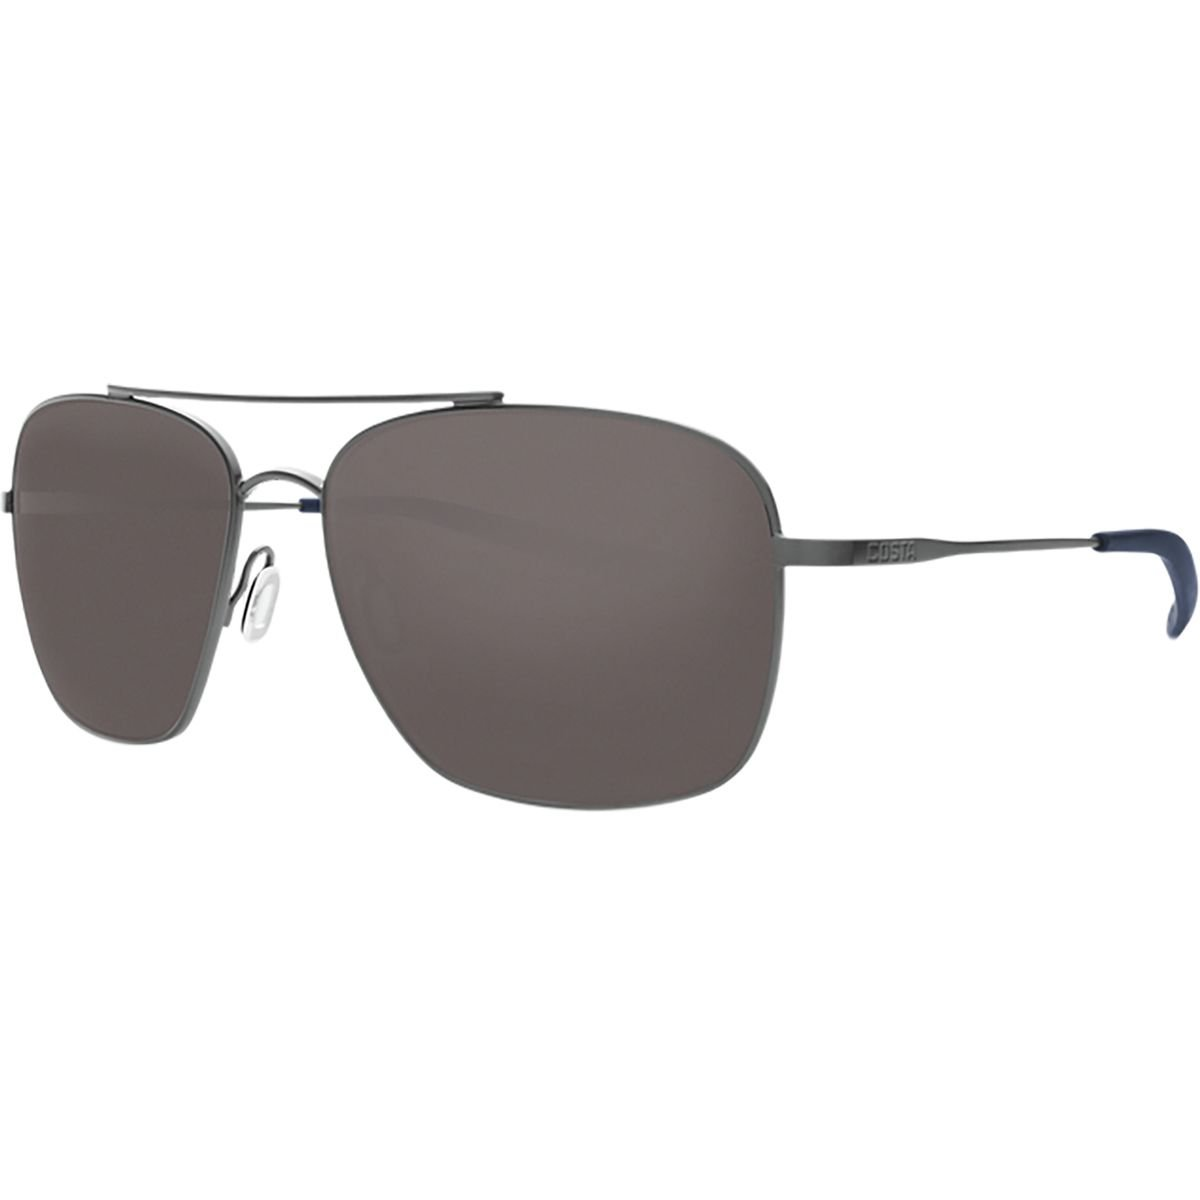 46c5ea366e65 Amazon.com: Costa Del Mar Canaveral Sunglasses Brushed Gray/Gray 580Glass,  One Size: Sports & Outdoors